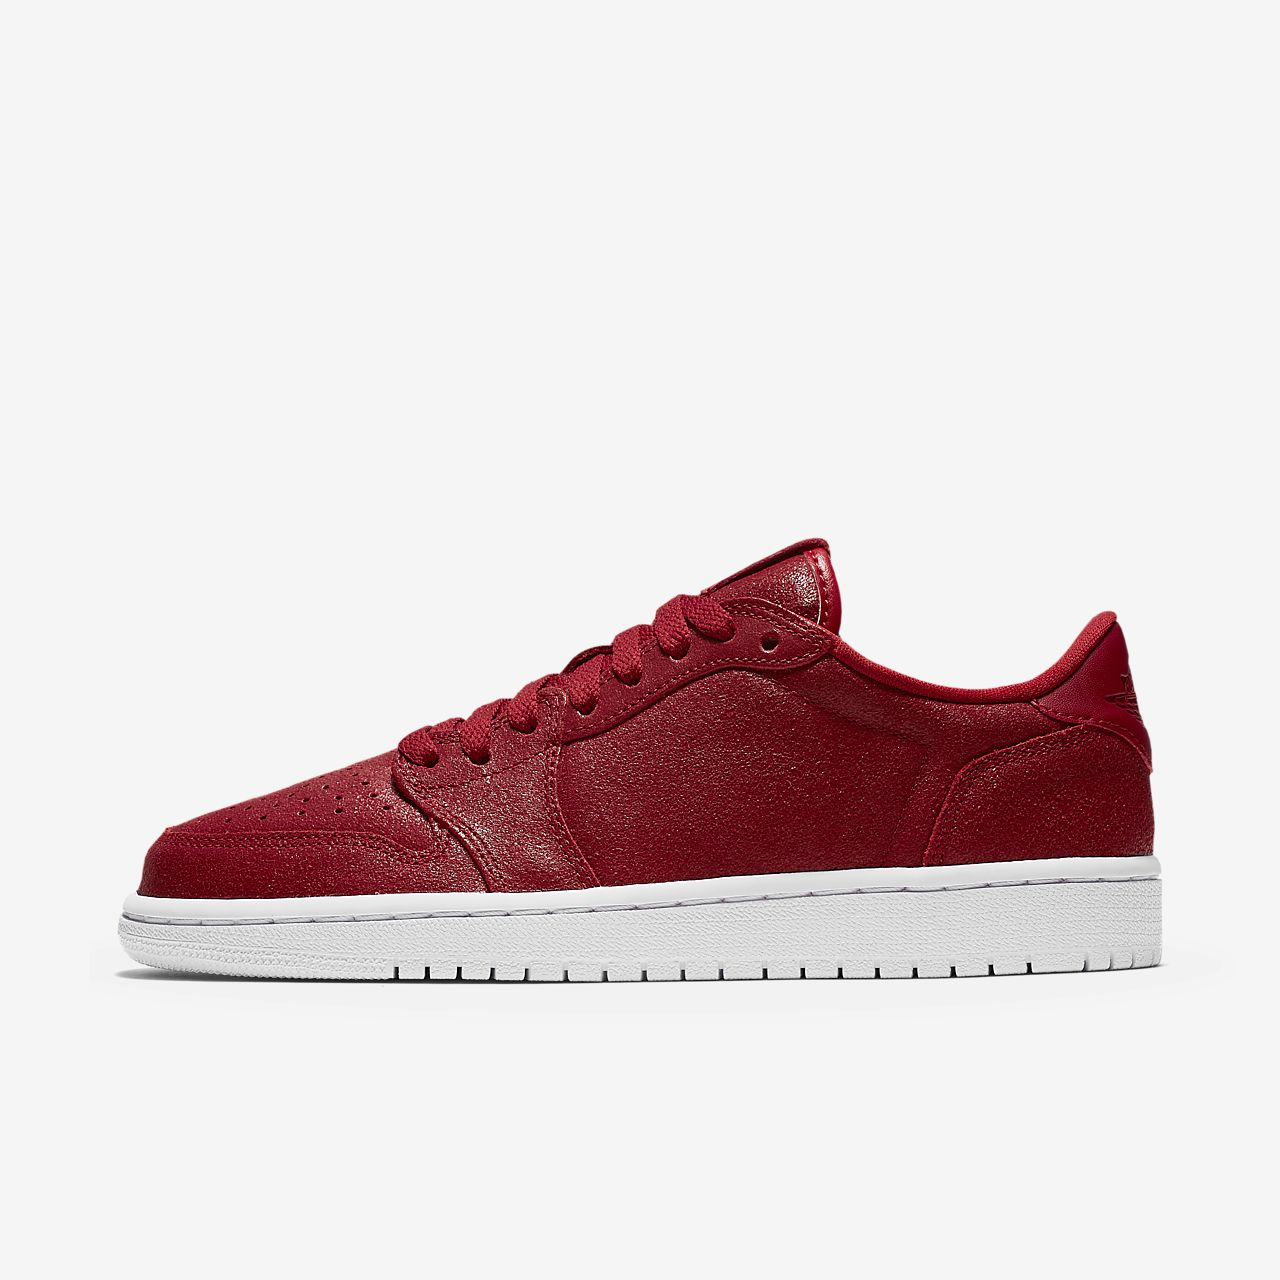 07030c37a4cae Air Jordan 1 Retro Low NS Women s Shoe. Nike.com CA